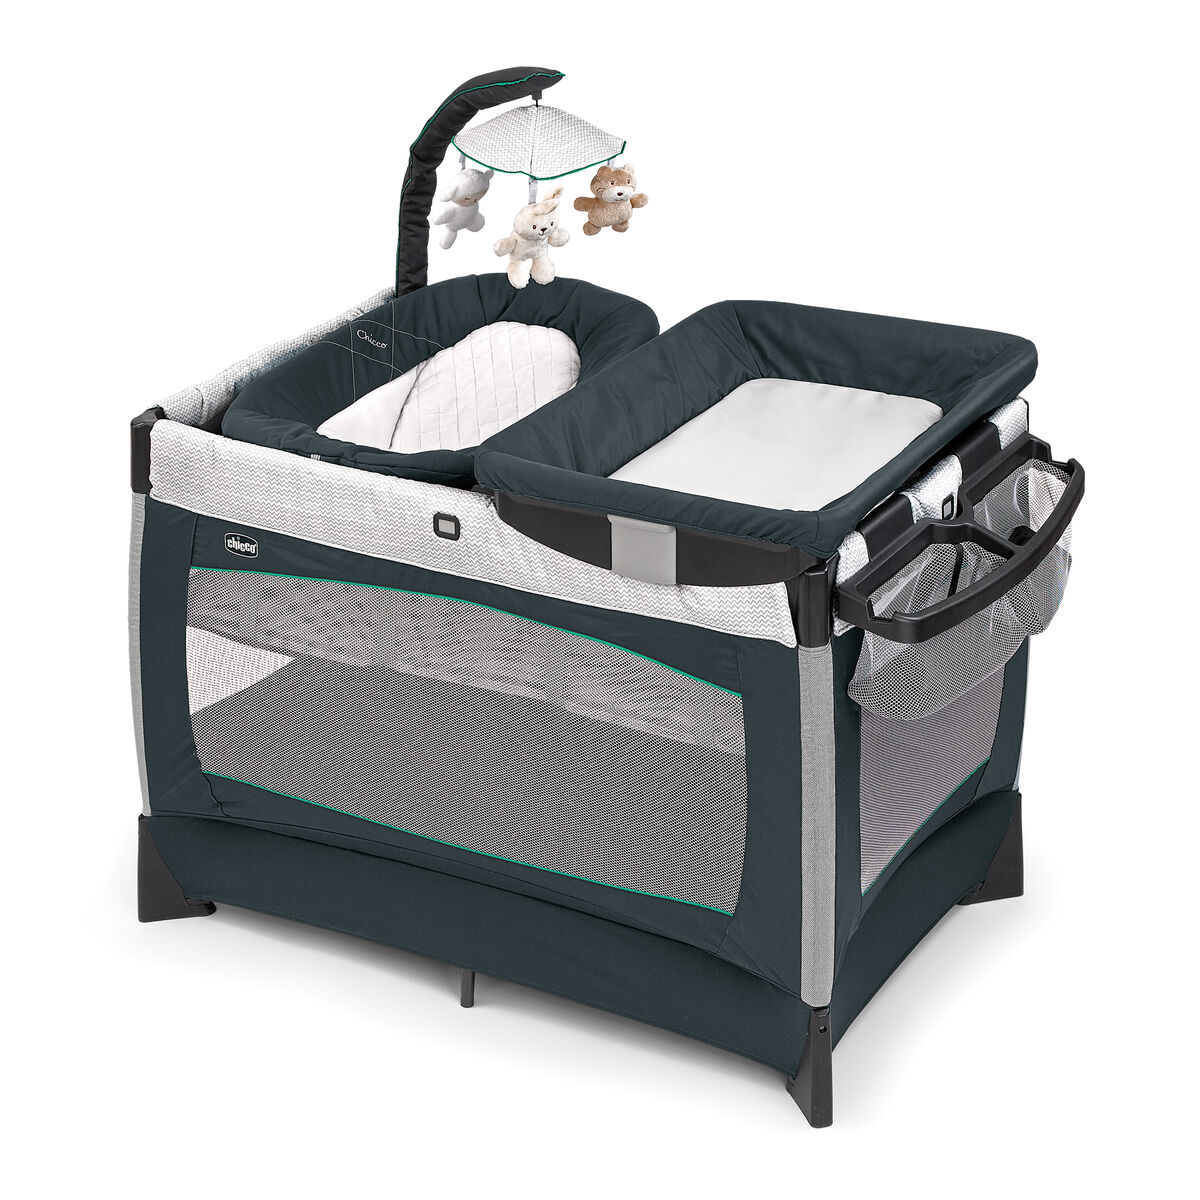 Baby crib playard - Lullaby Baby Playard Empire